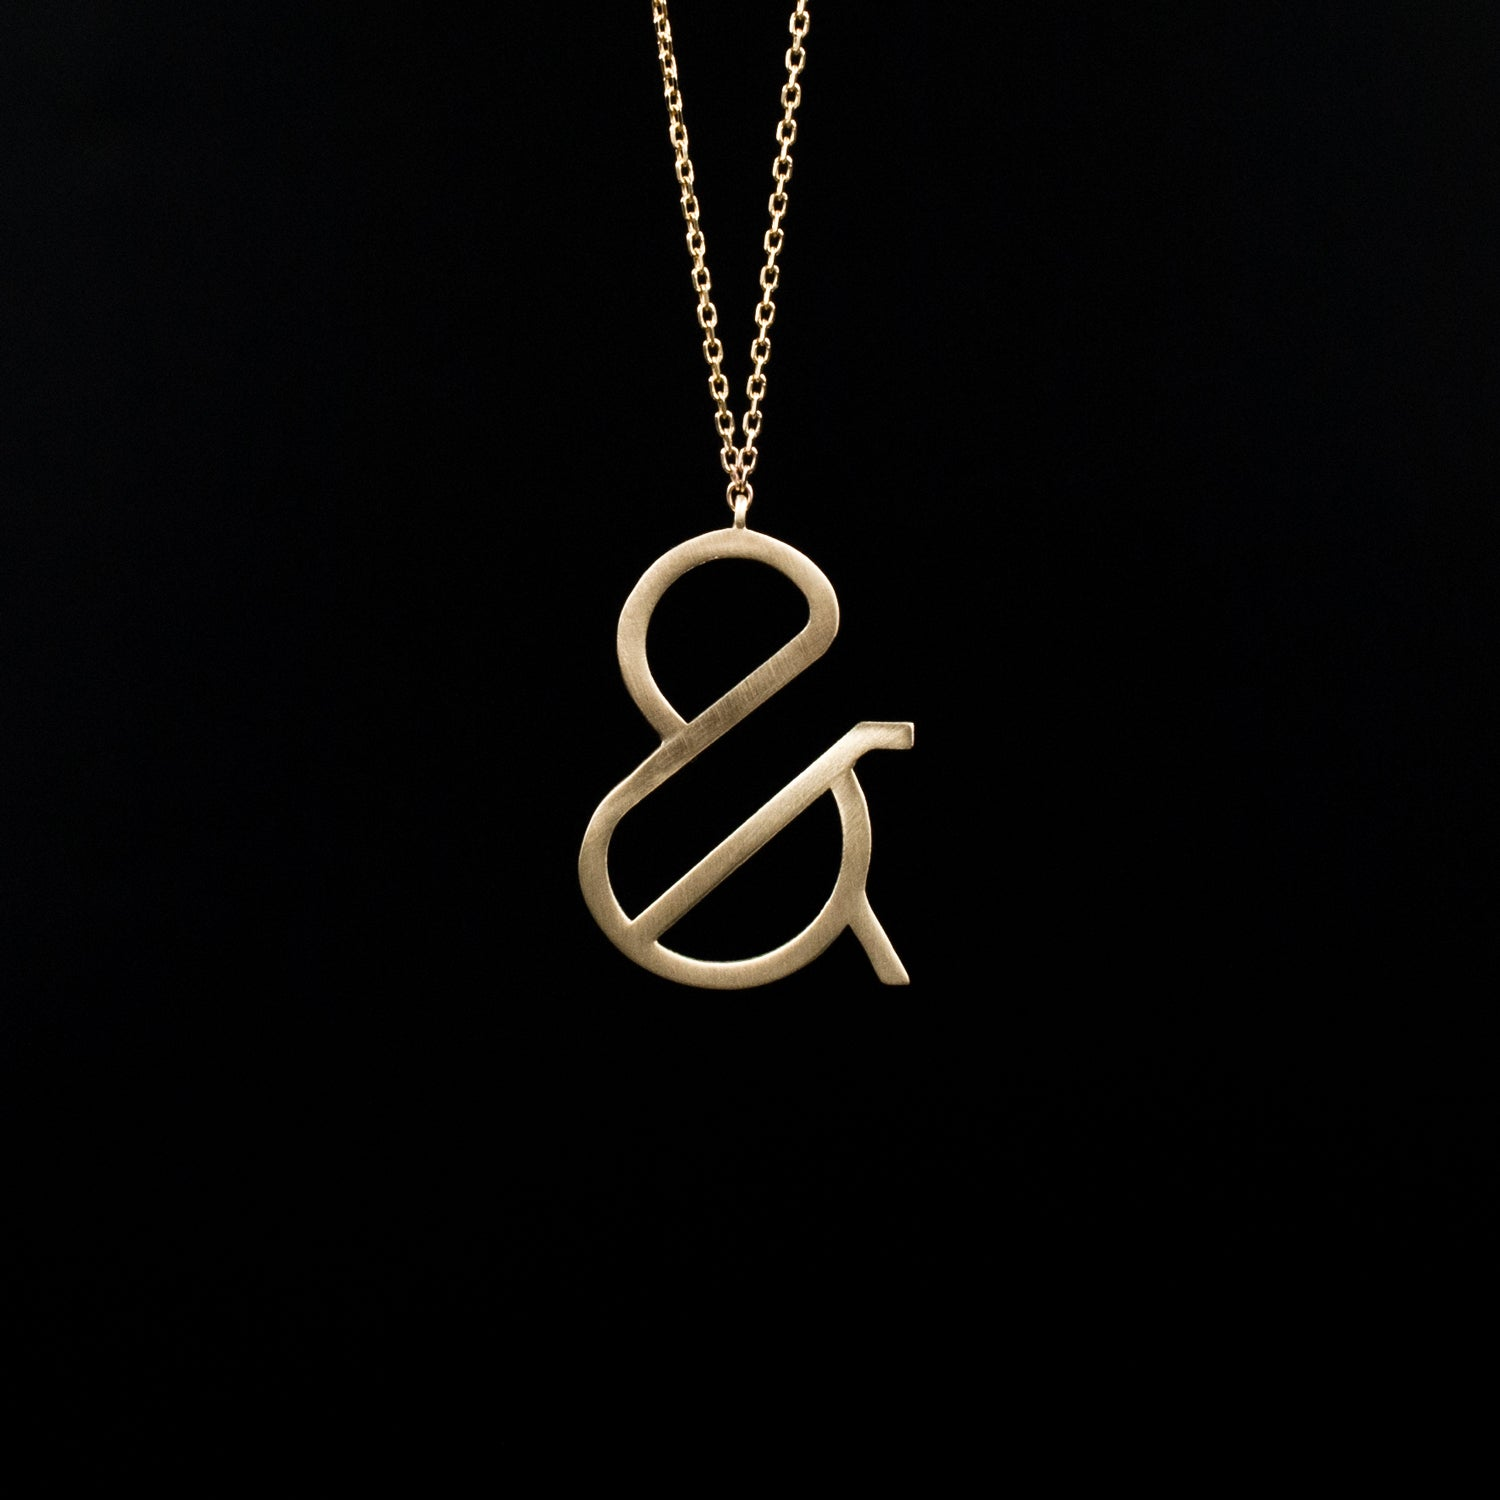 Minimal Ampersand Necklace - Designed by Moshik Nadav Fashion Typography